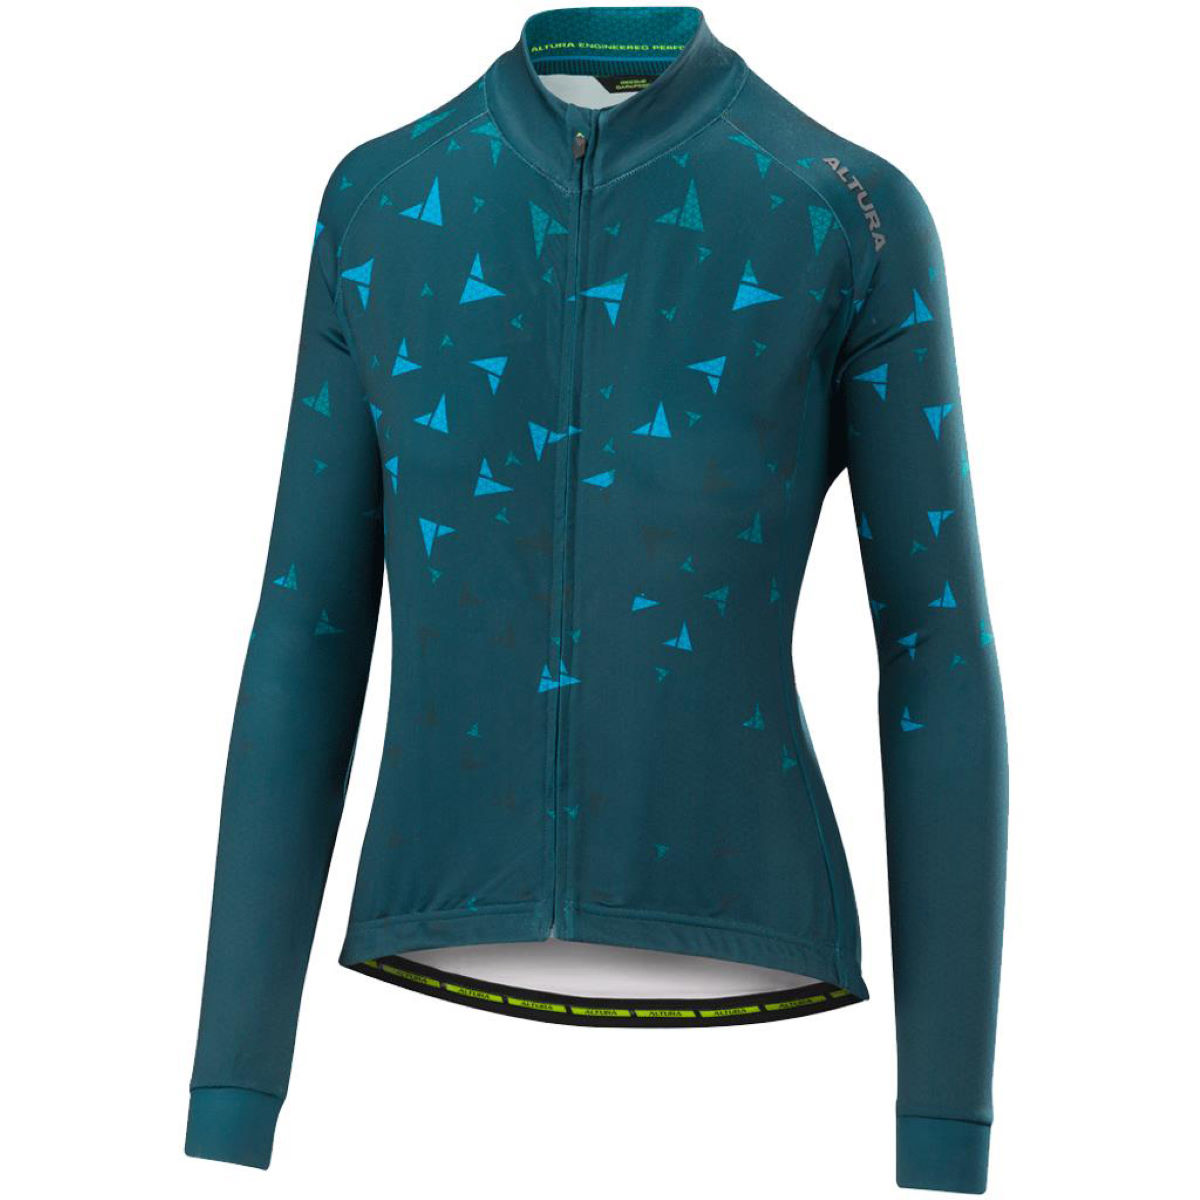 Altura Women's Thermo Flock Long Sleeve Jersey - Maillots